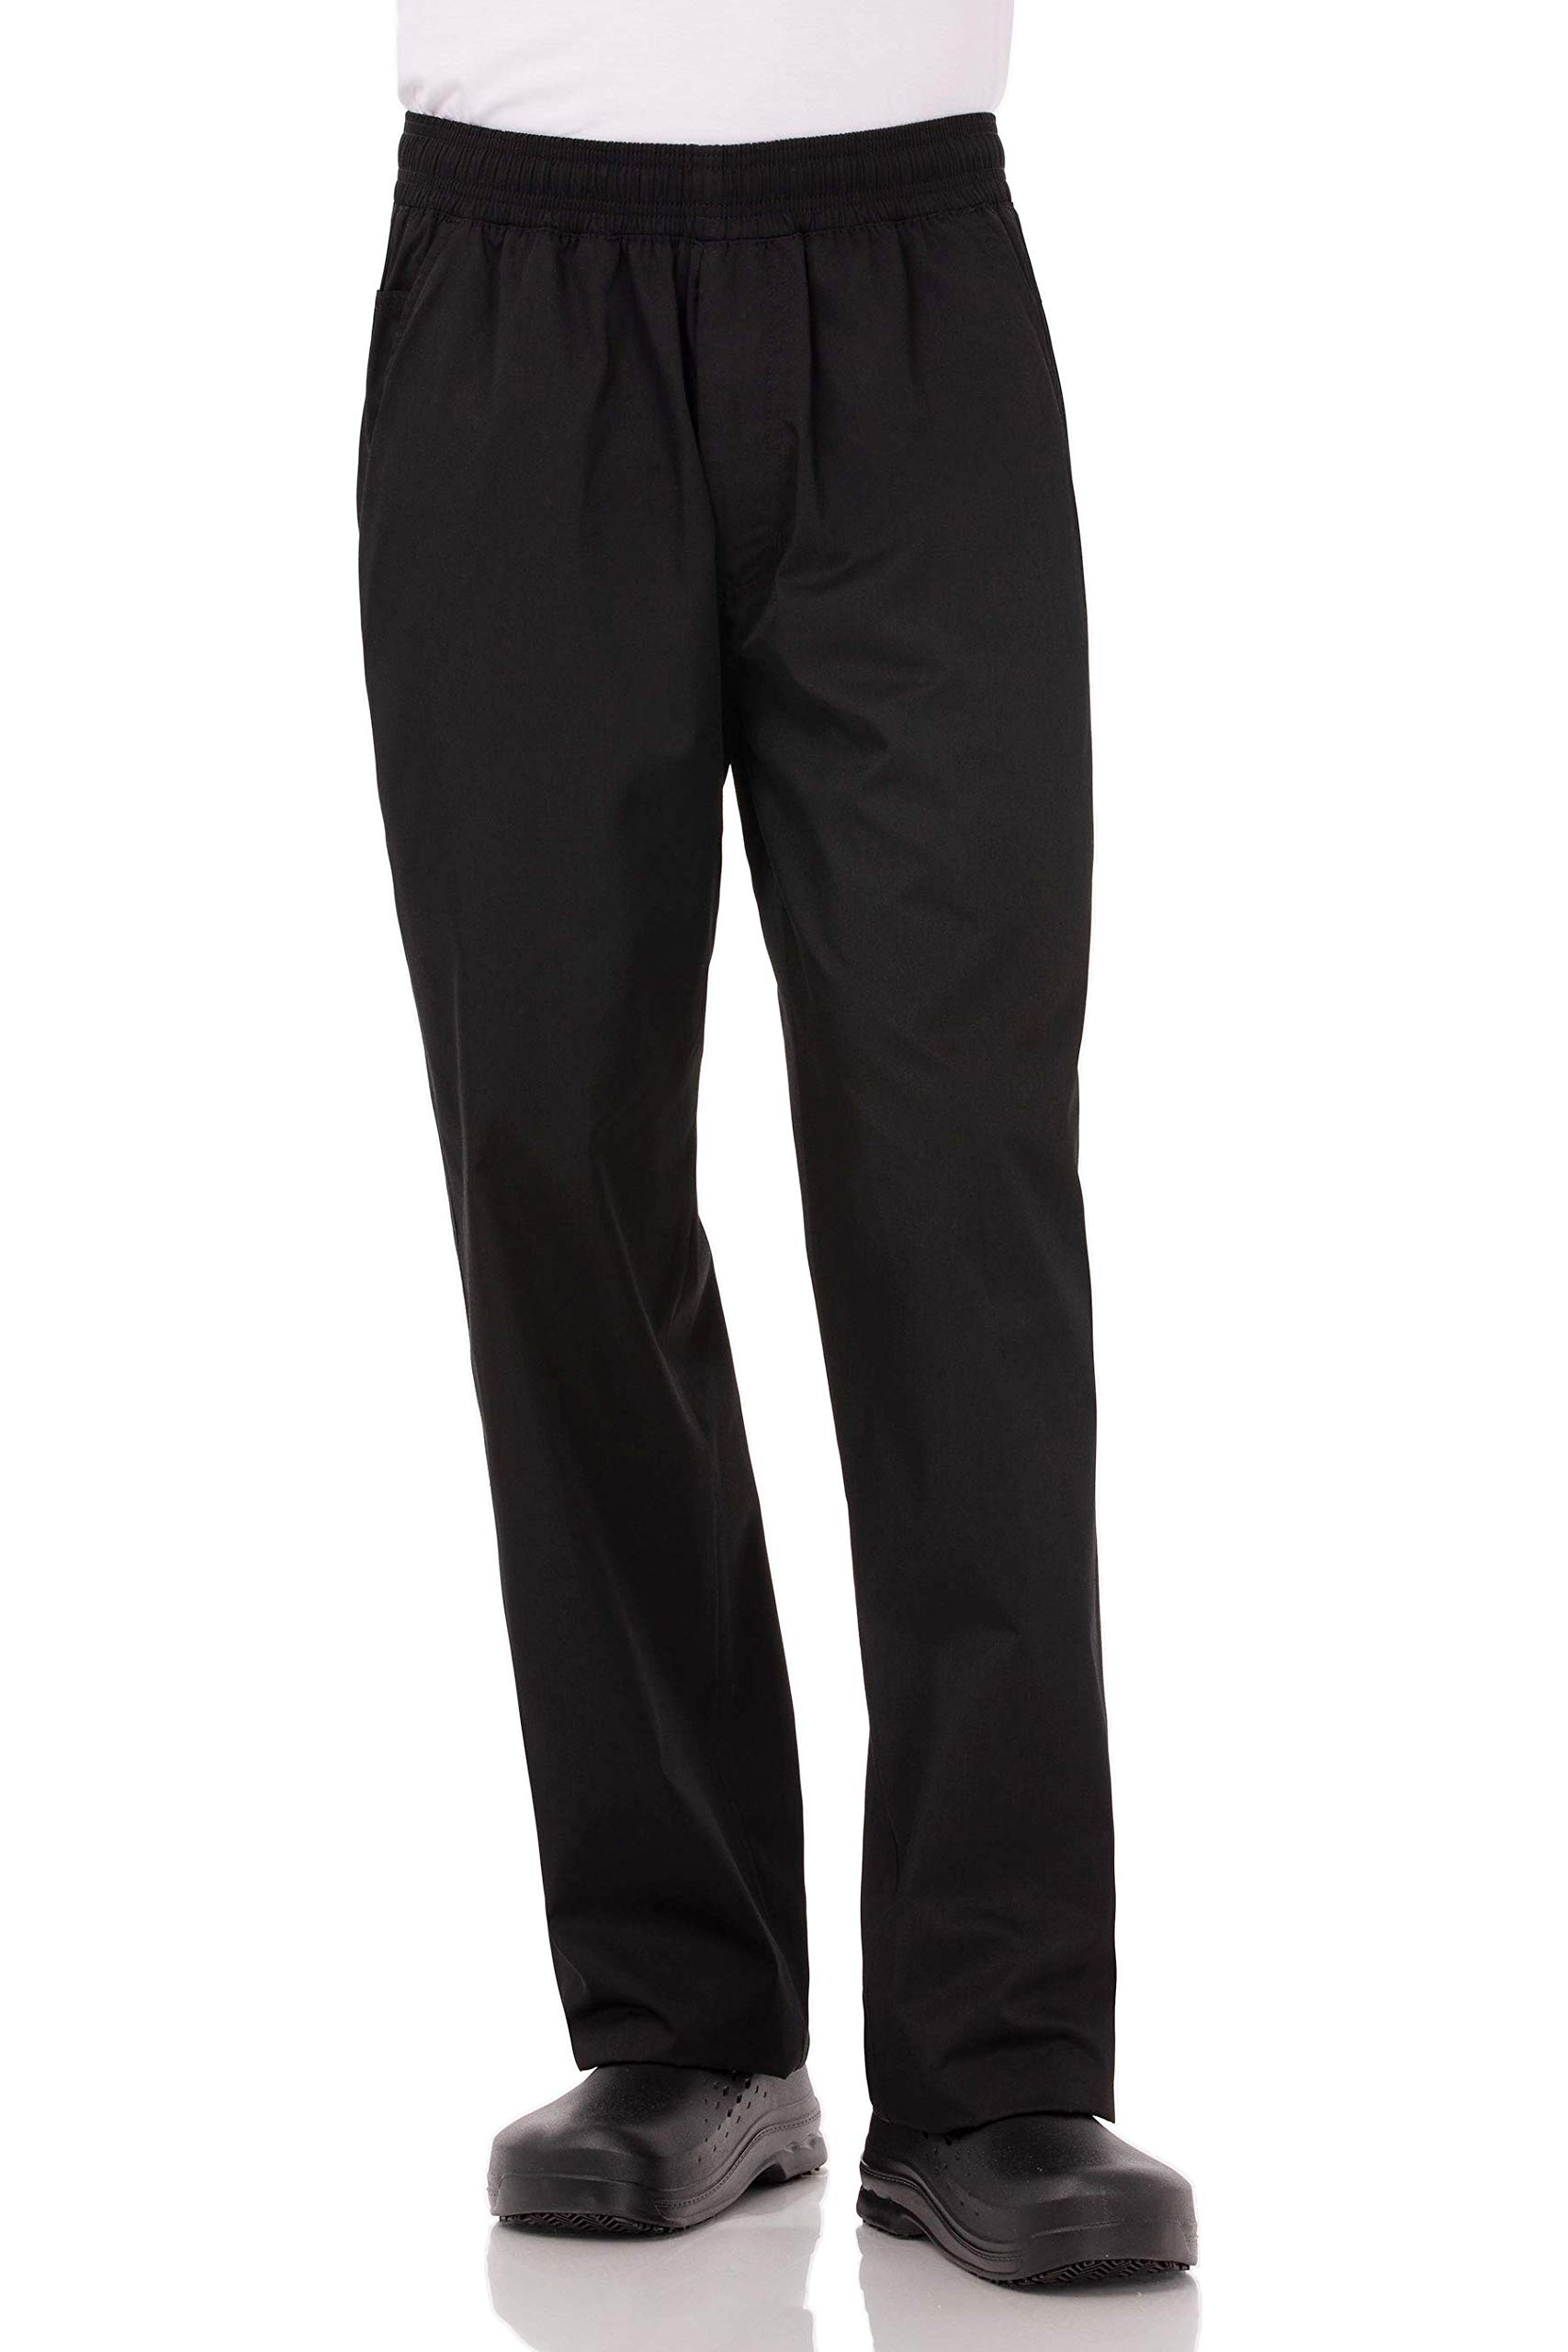 Chef Works Men's Lightweight Baggy Chef Pants, Black, Large by Chef Works